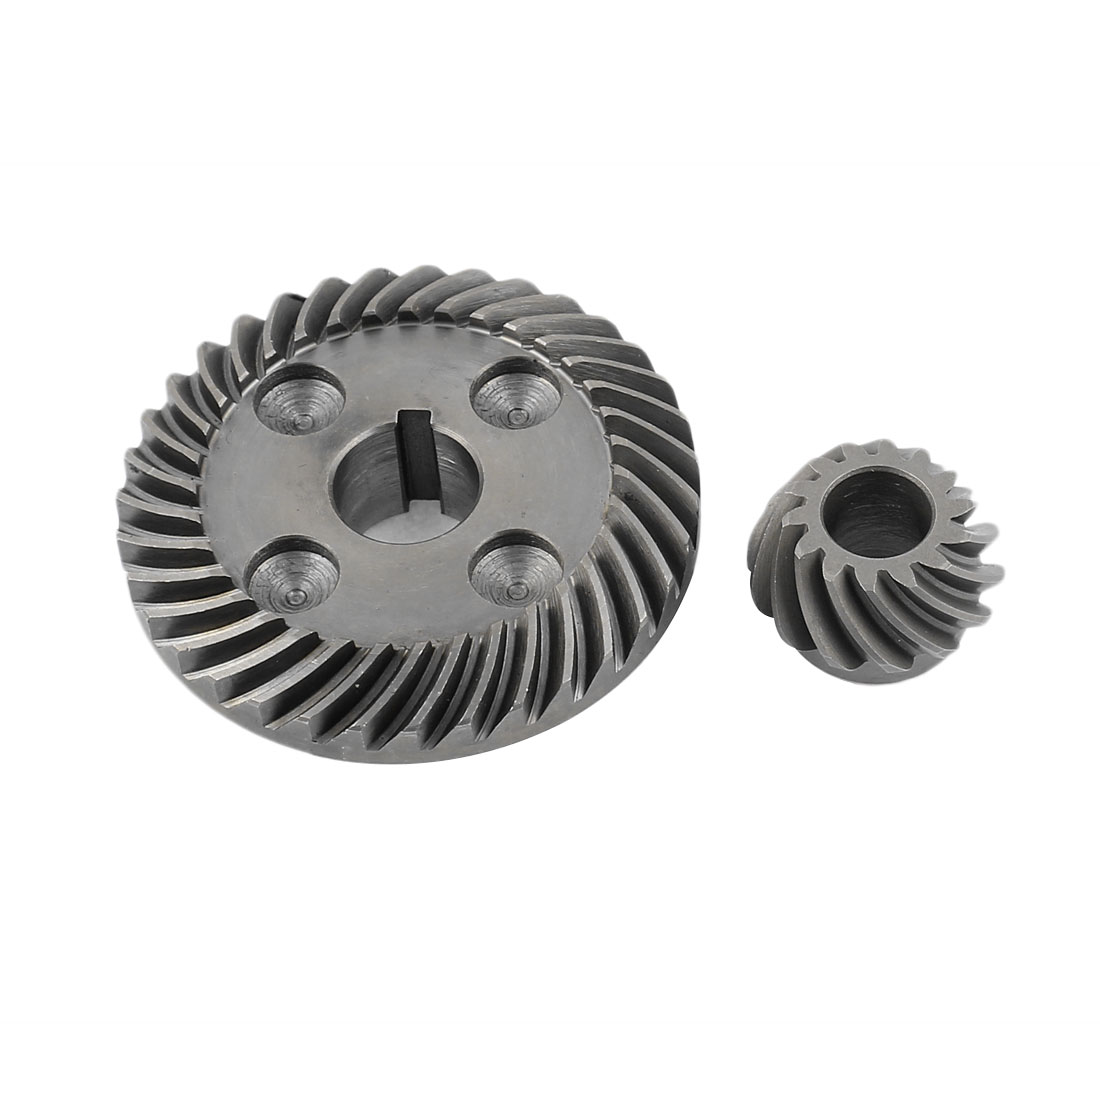 Replacement Metal Electric Tool Angle Grinding Spiral Bevel Gear Set for Hitachi 100 Angle